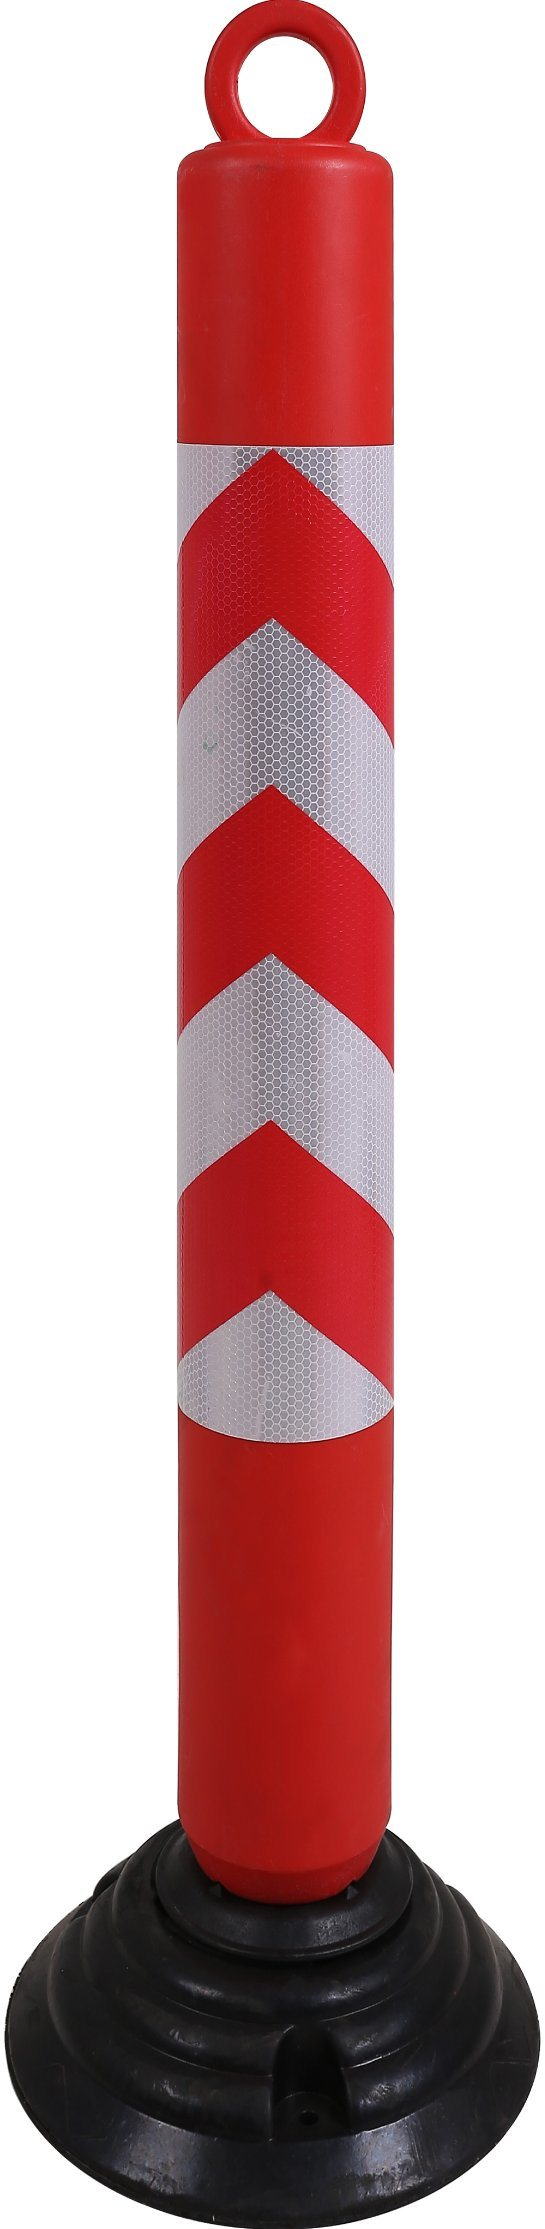 Elasticized Molded Interlocking PE 800mm Plastic Flex Bollard